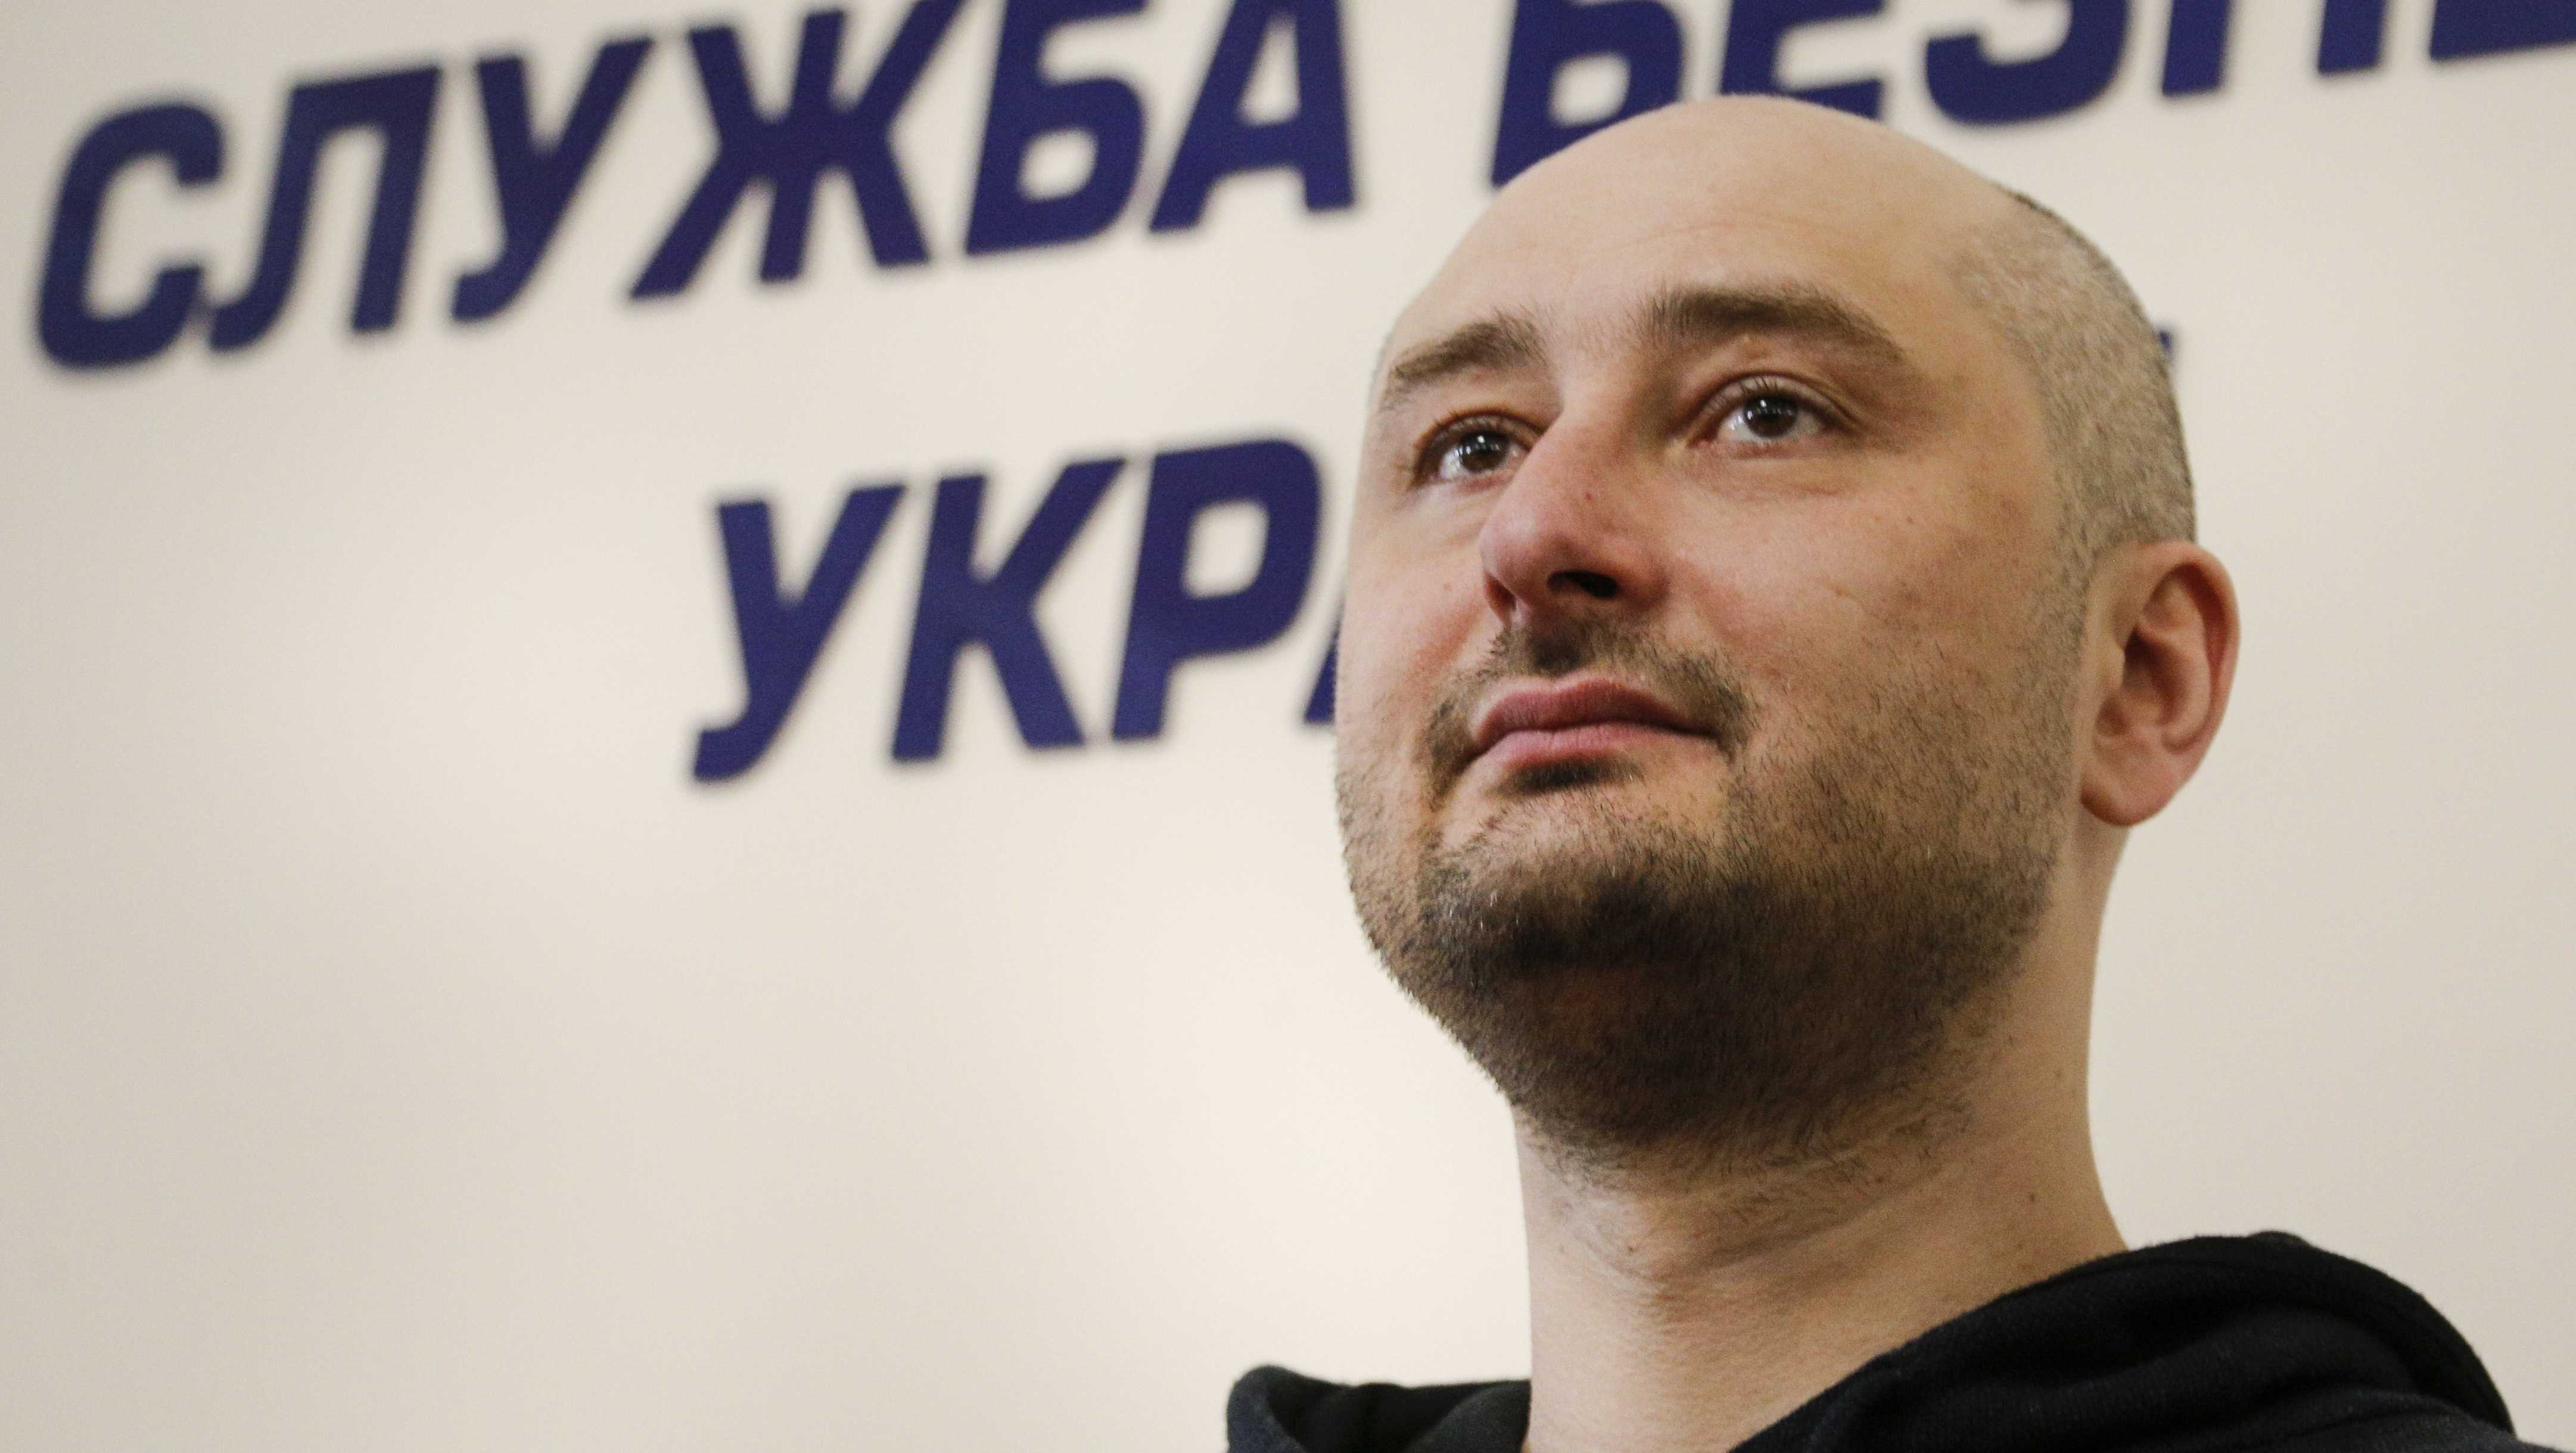 Russian journalist Arkady Babchenko, listens for a question during a news conference with Vasily Gritsak, head of the Ukrainian Security Service and Ukrainian Prosecutor General Yuriy Lutsenko at the Ukrainian Security Service on Wednesday, May 30, 2018.